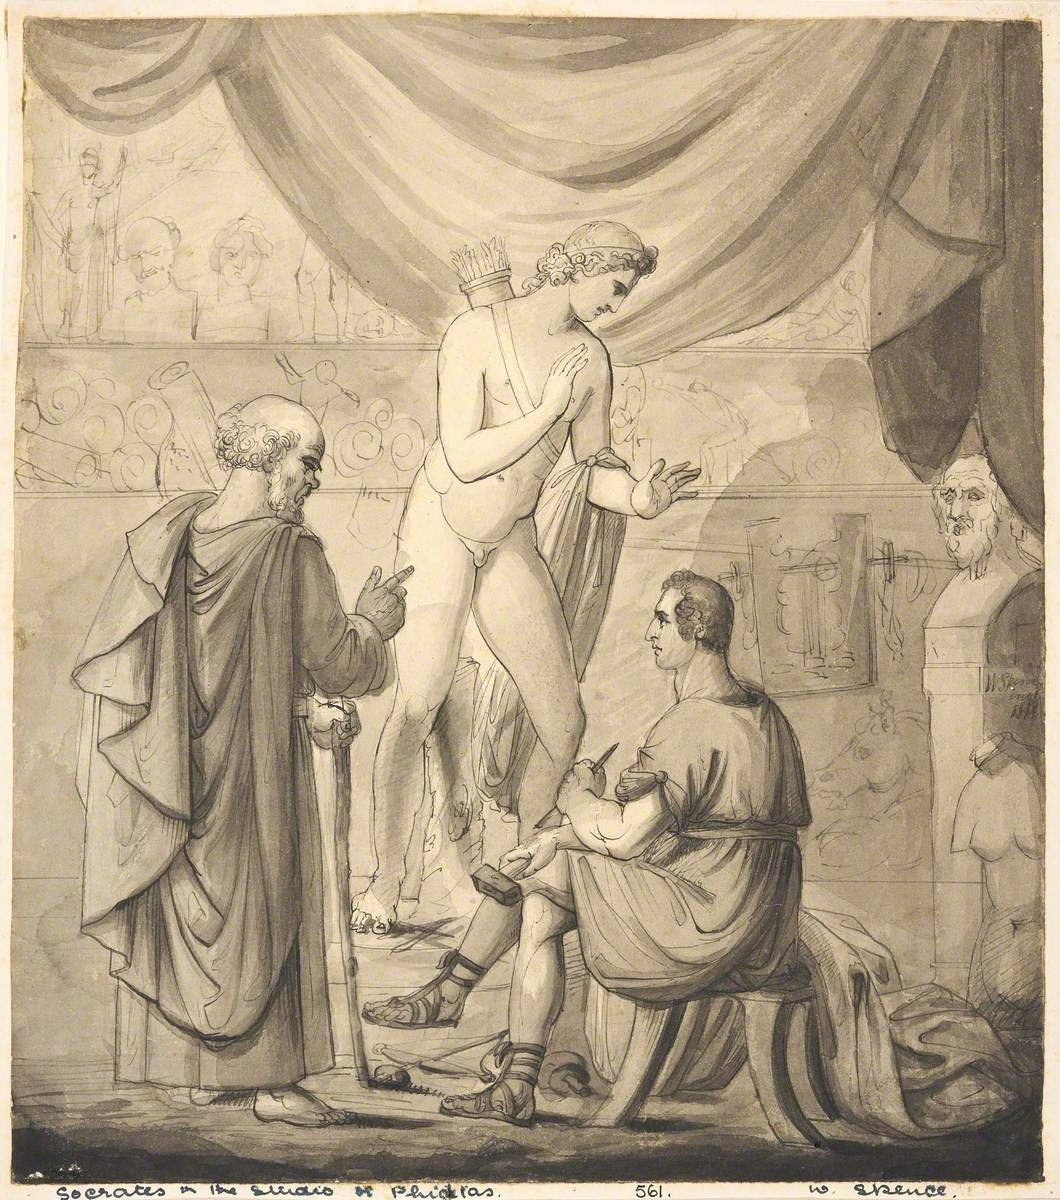 Socrates in the Studio of Phidias